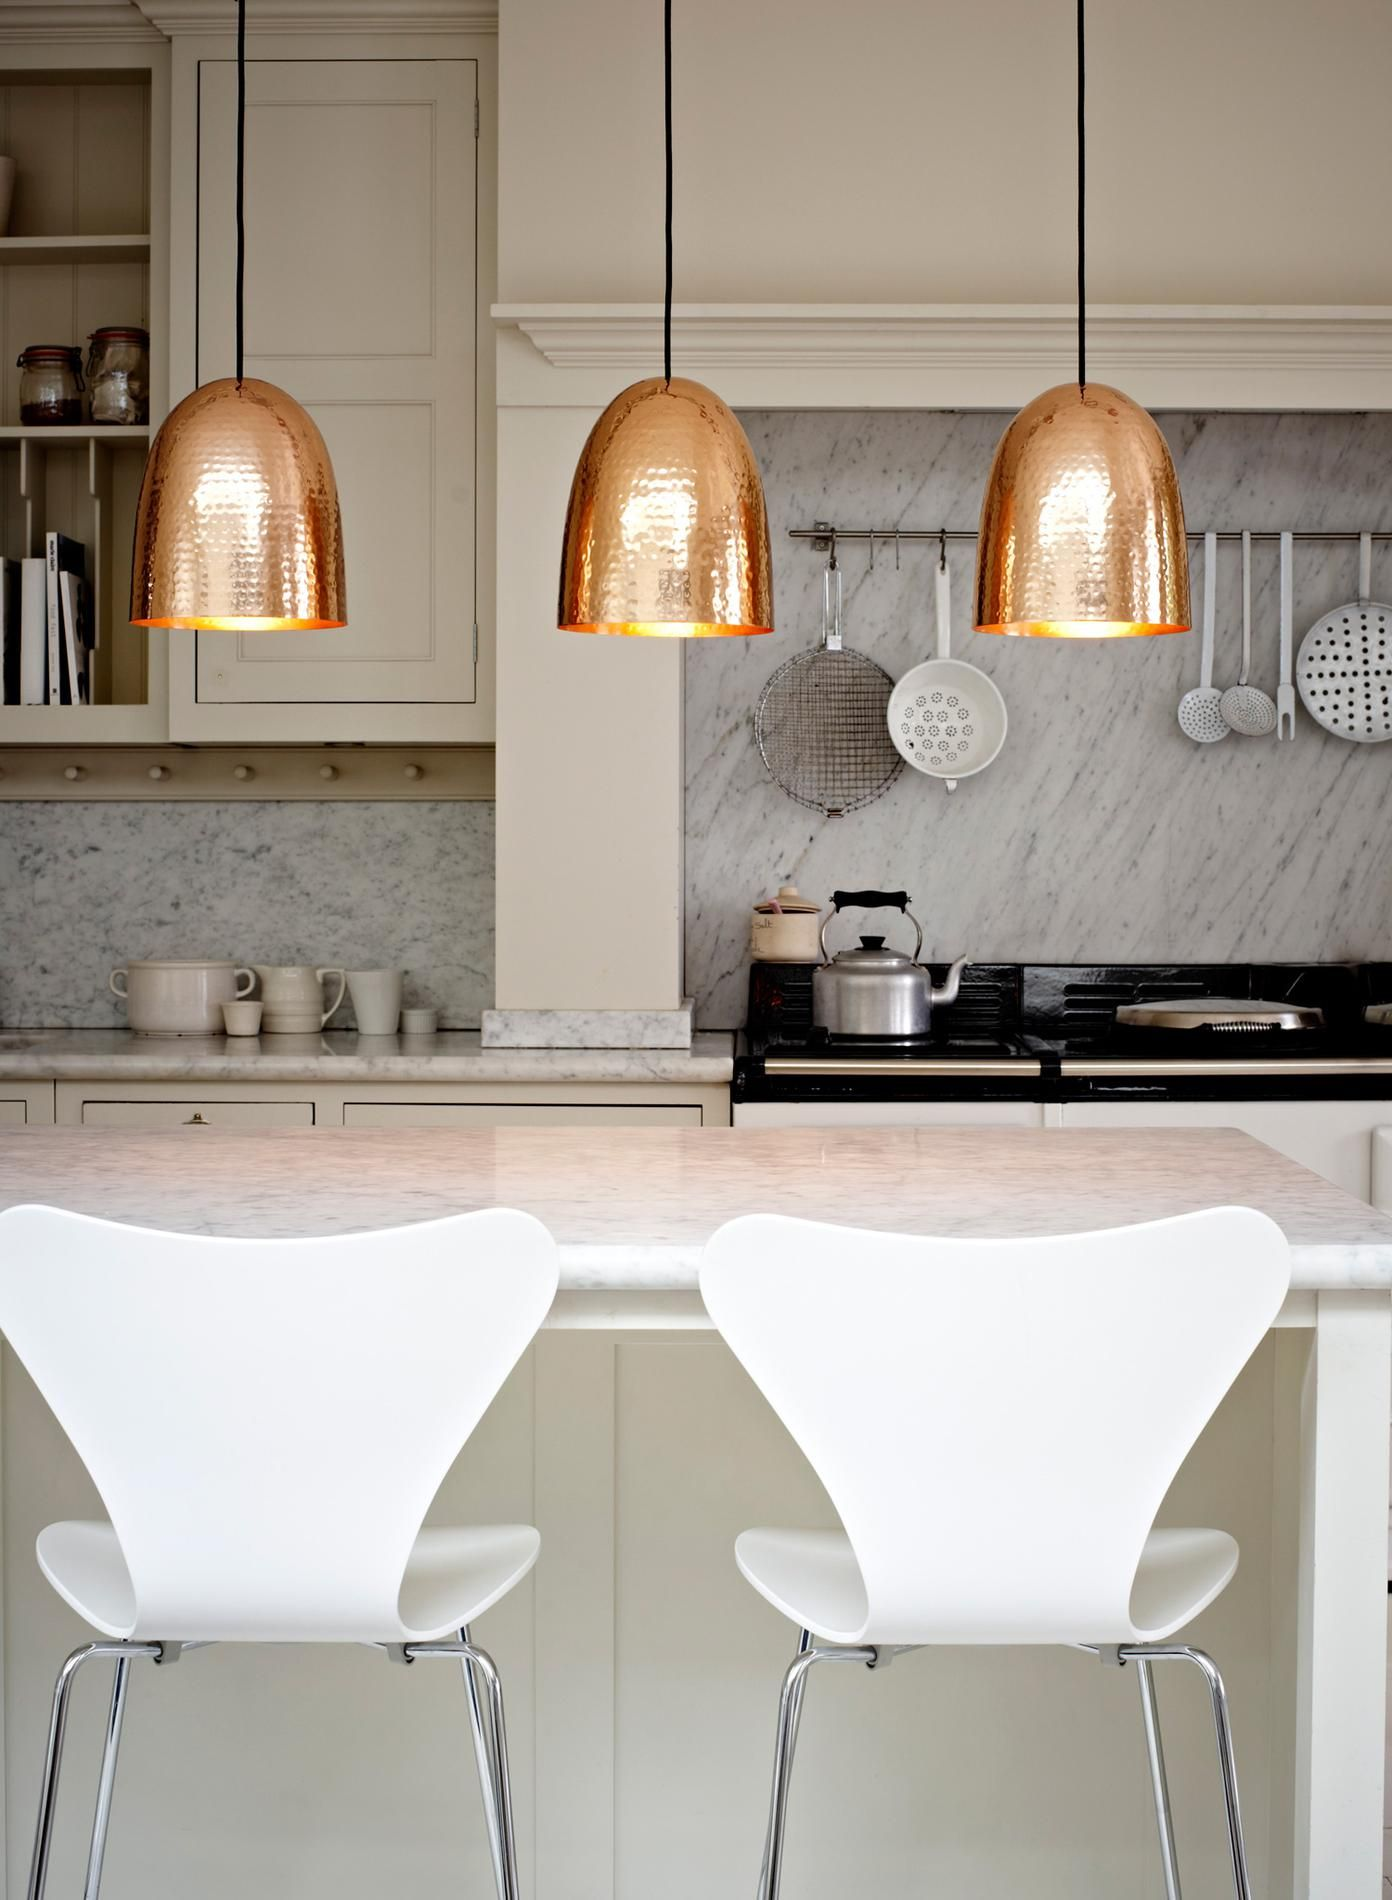 lighting pendants kitchen. Copper Lighting Pendants. Hammered Trio Pendant Lights Pendants L Kitchen N